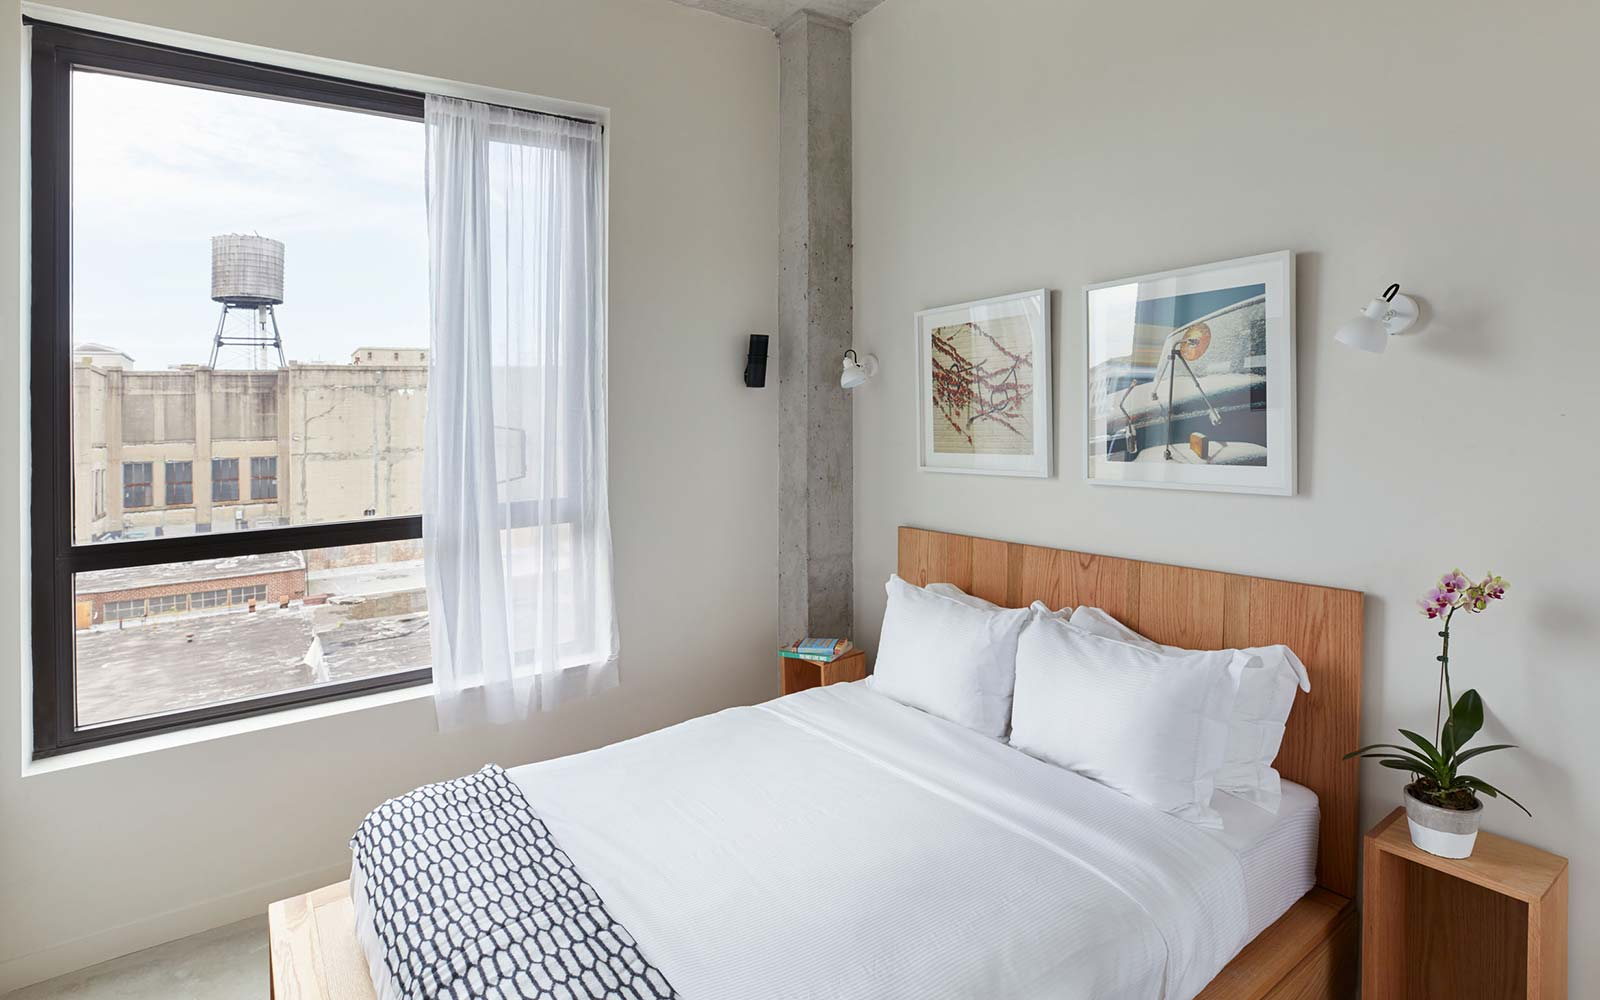 Baltic Huis Hotel Gowanus Brooklyn New York City